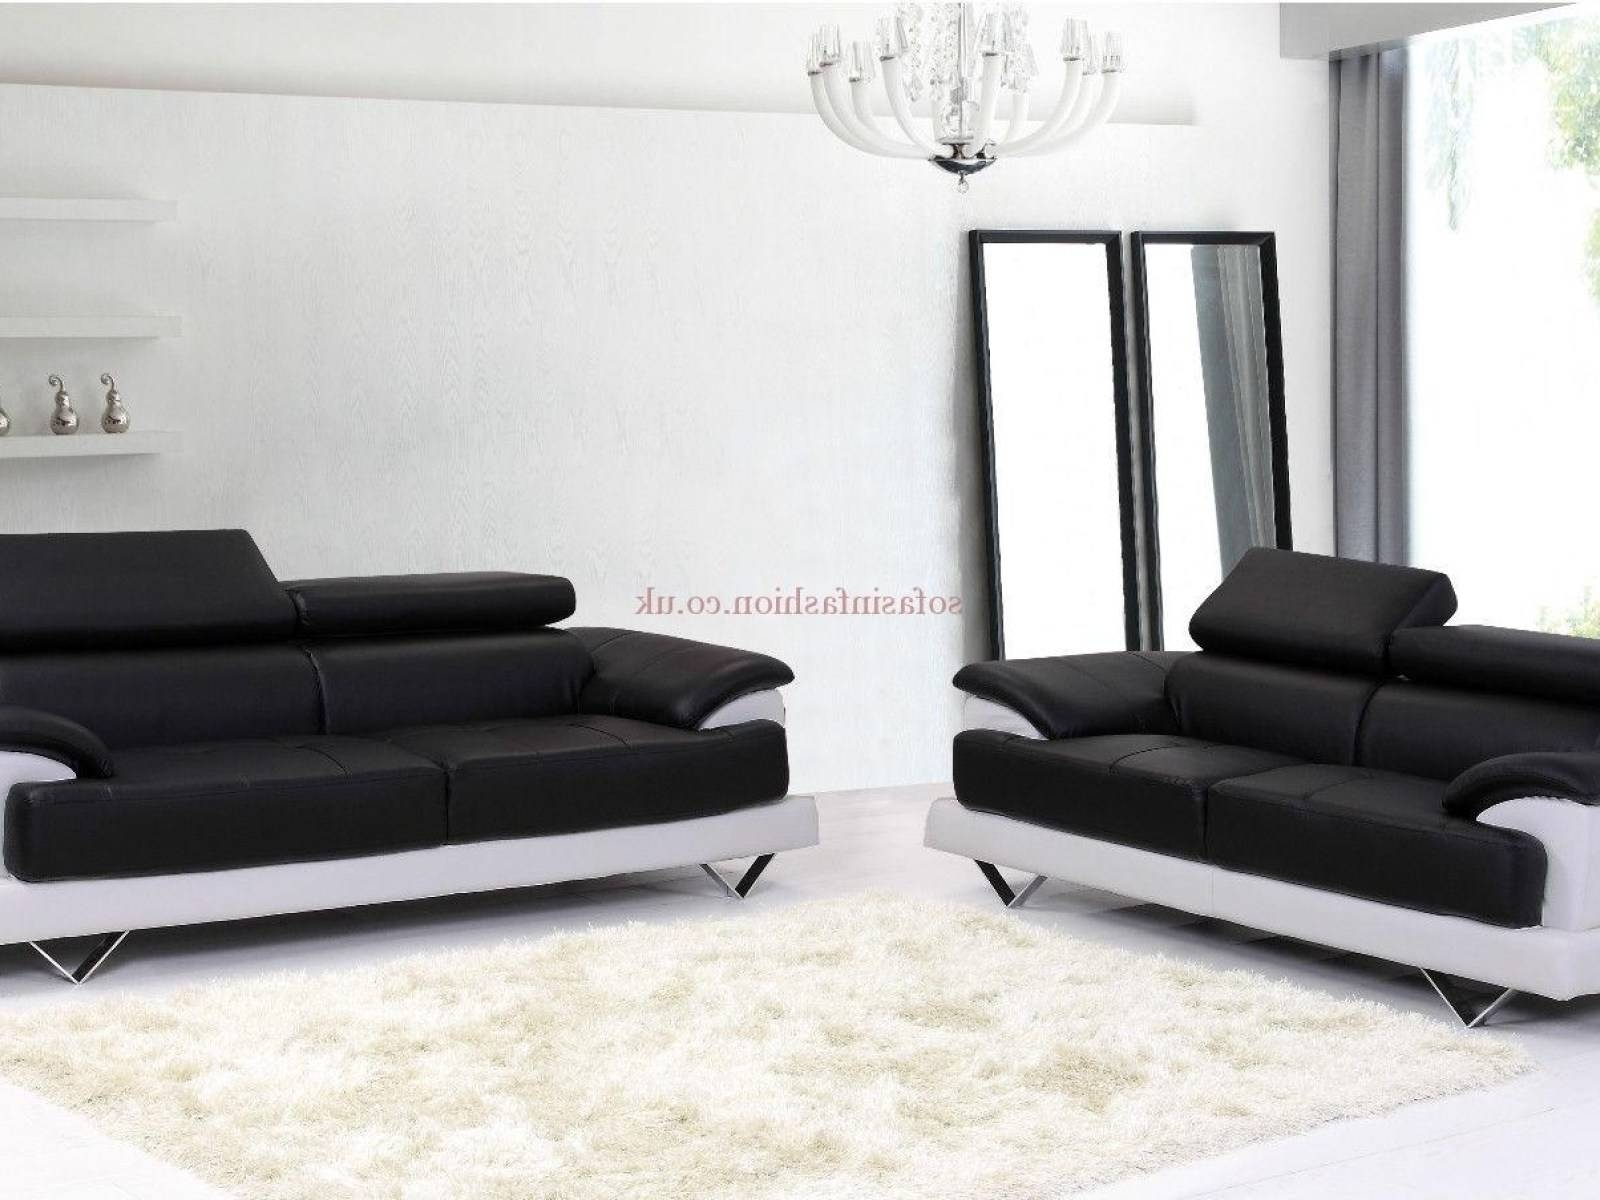 ▻ Sofa : 8 Leather Sofa Set Black And White Cosmo Sofas In for Black And White Sofas (Image 29 of 30)